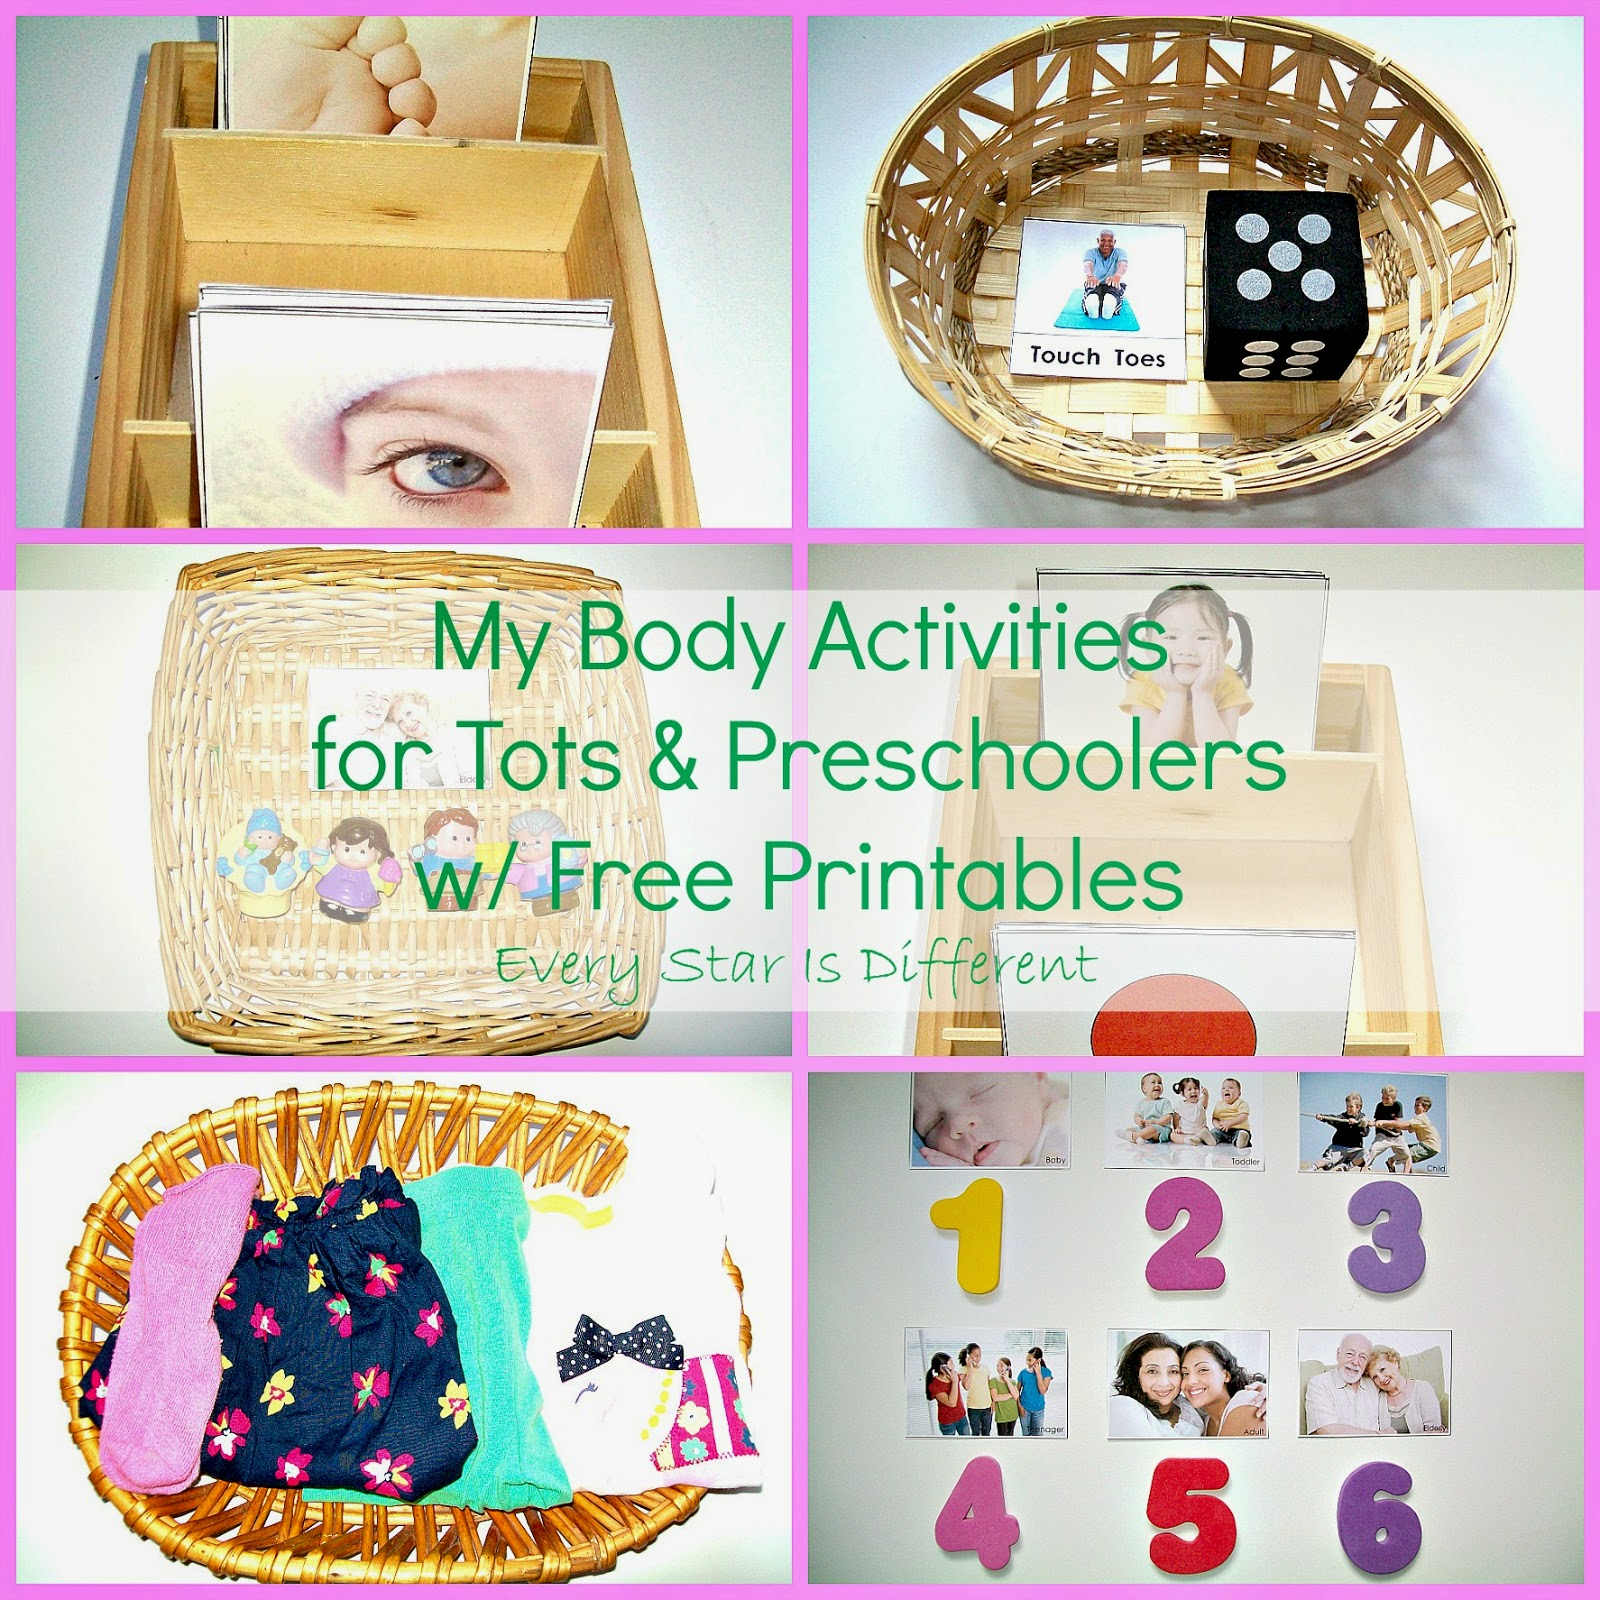 Every Star Is Different My Body Activities For Tots Amp Preschoolers W Free Printables Klp Linky